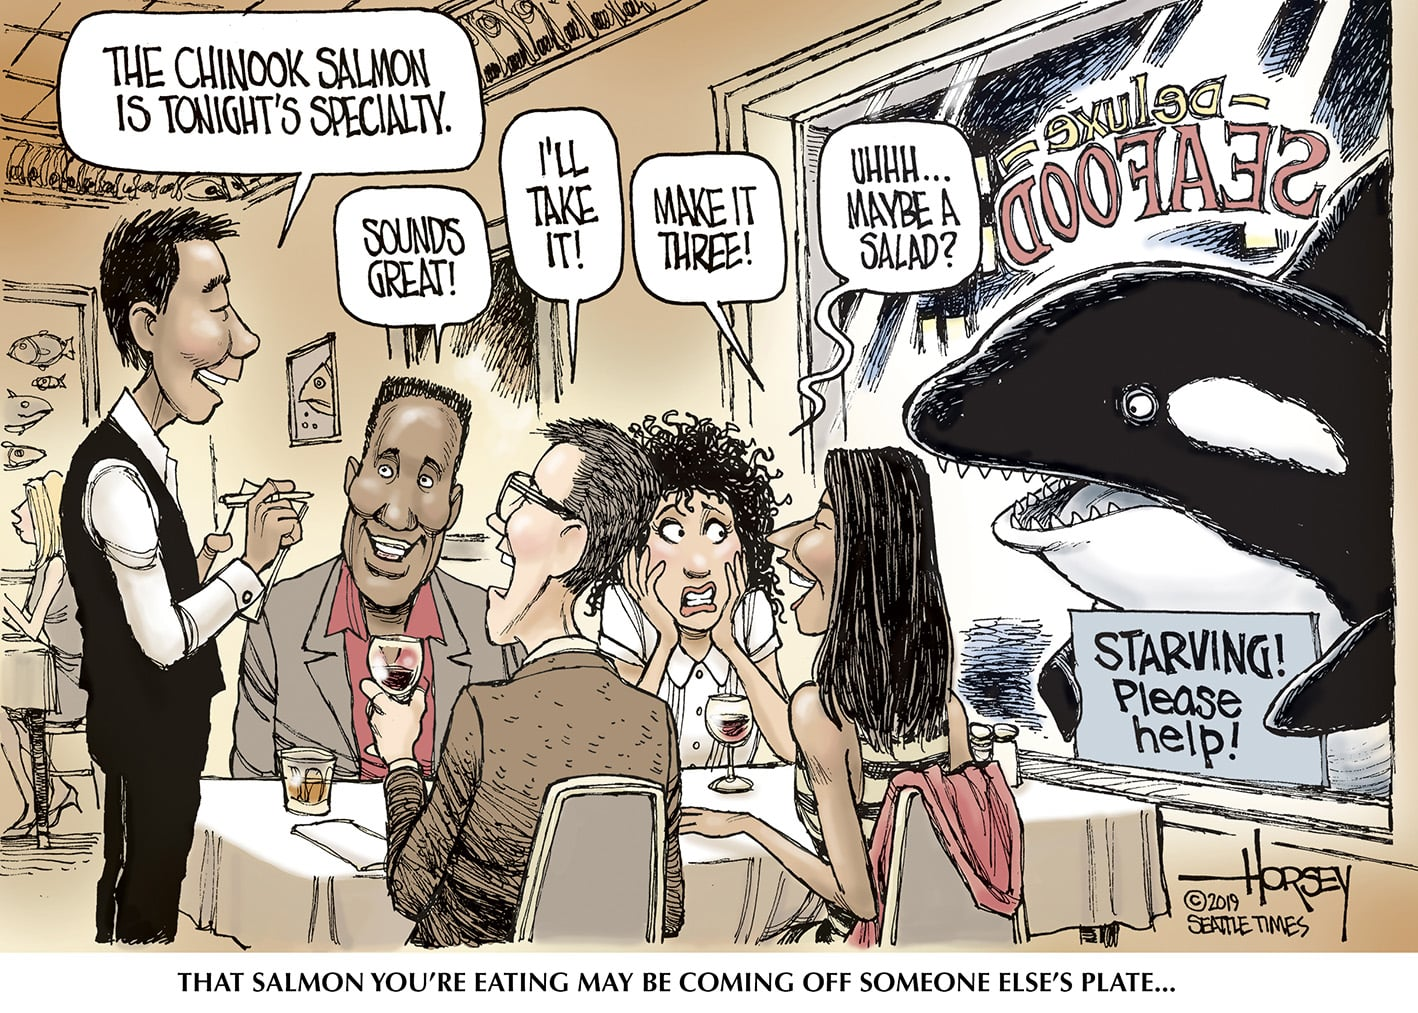 Jan. 12: Starving Orcas